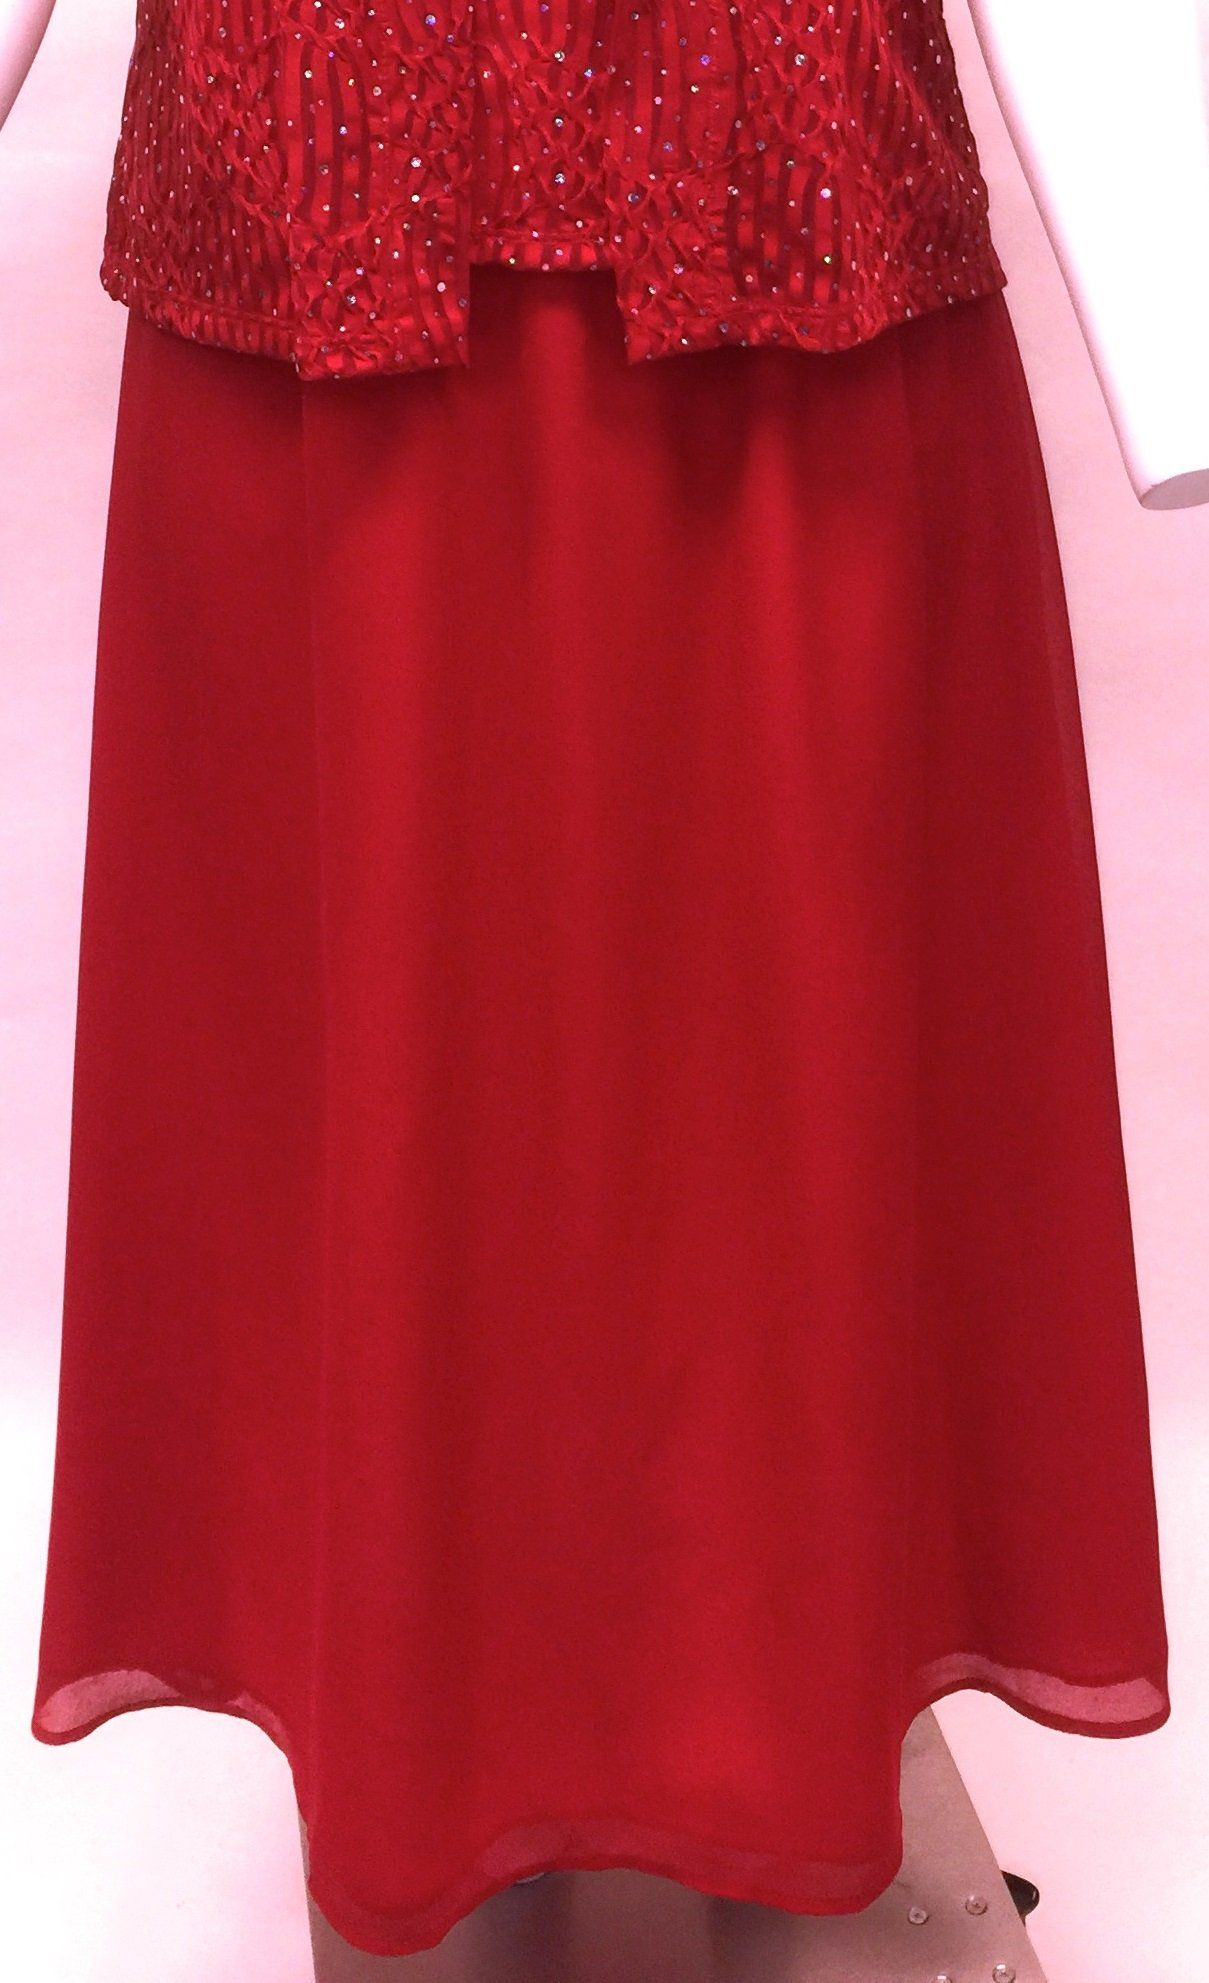 Red Georgette Full Length Skirt. Style #A145-Skirt-Rd